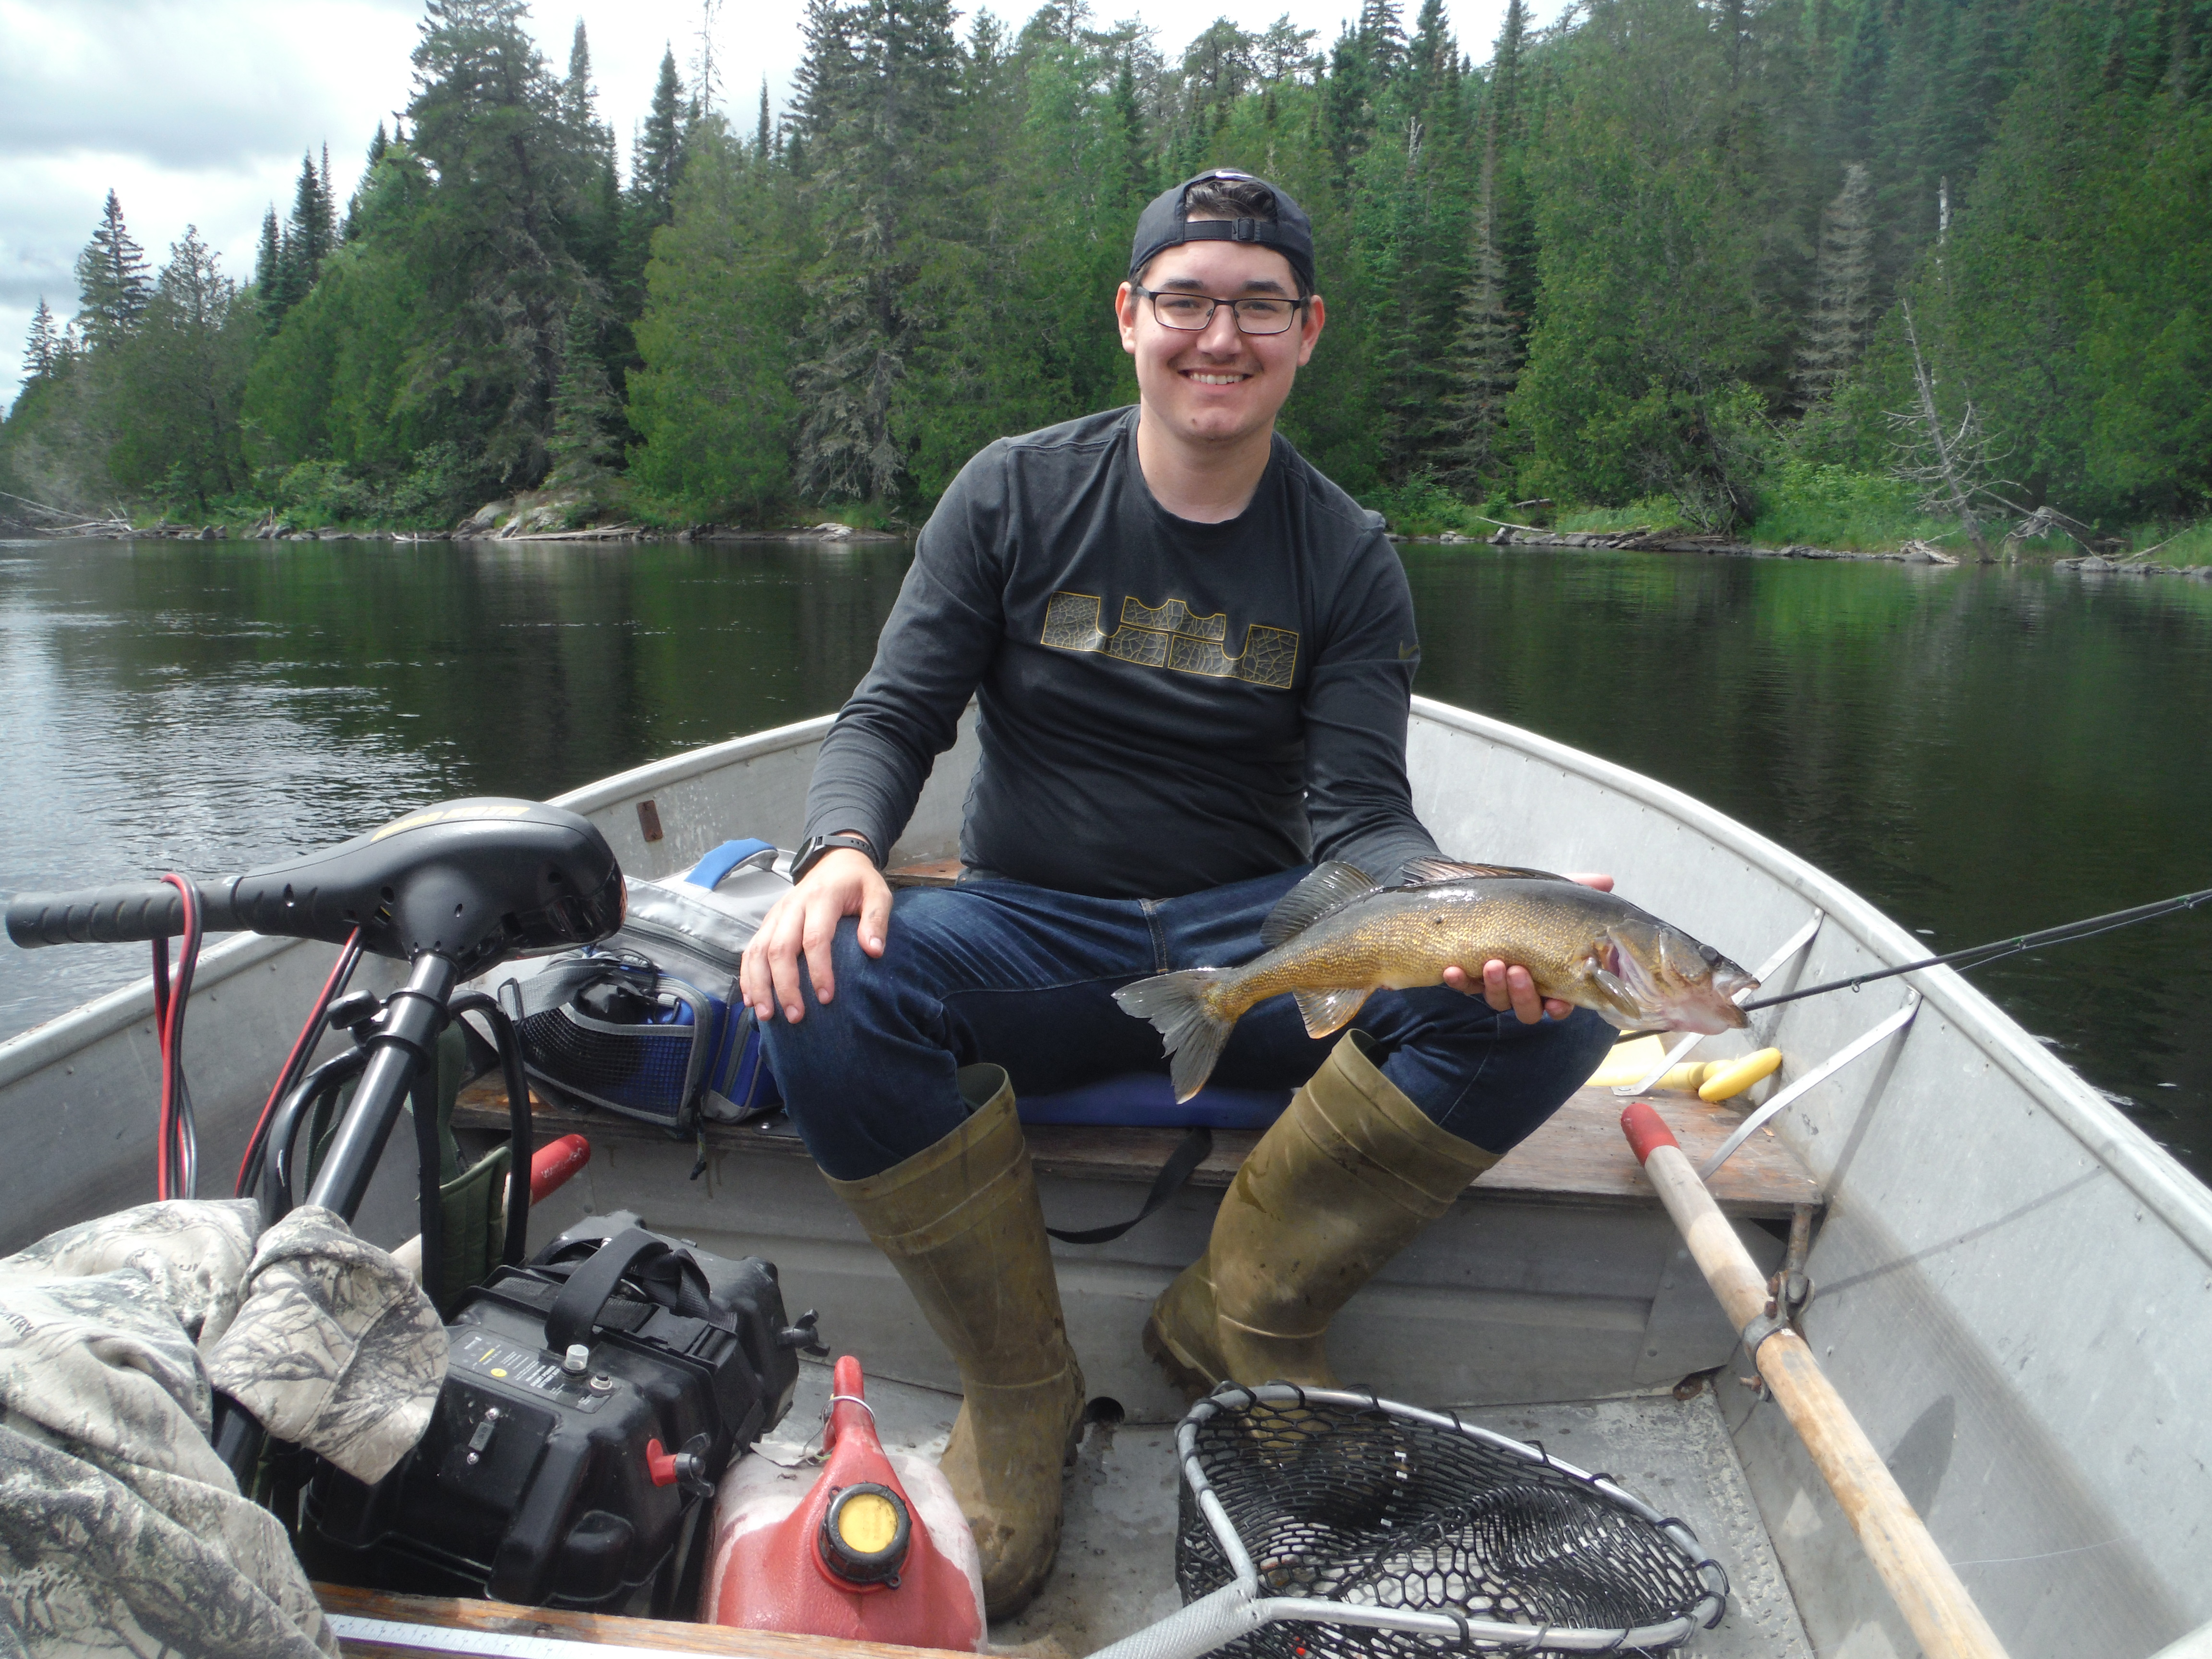 Patrick with Walleye on portage 2020